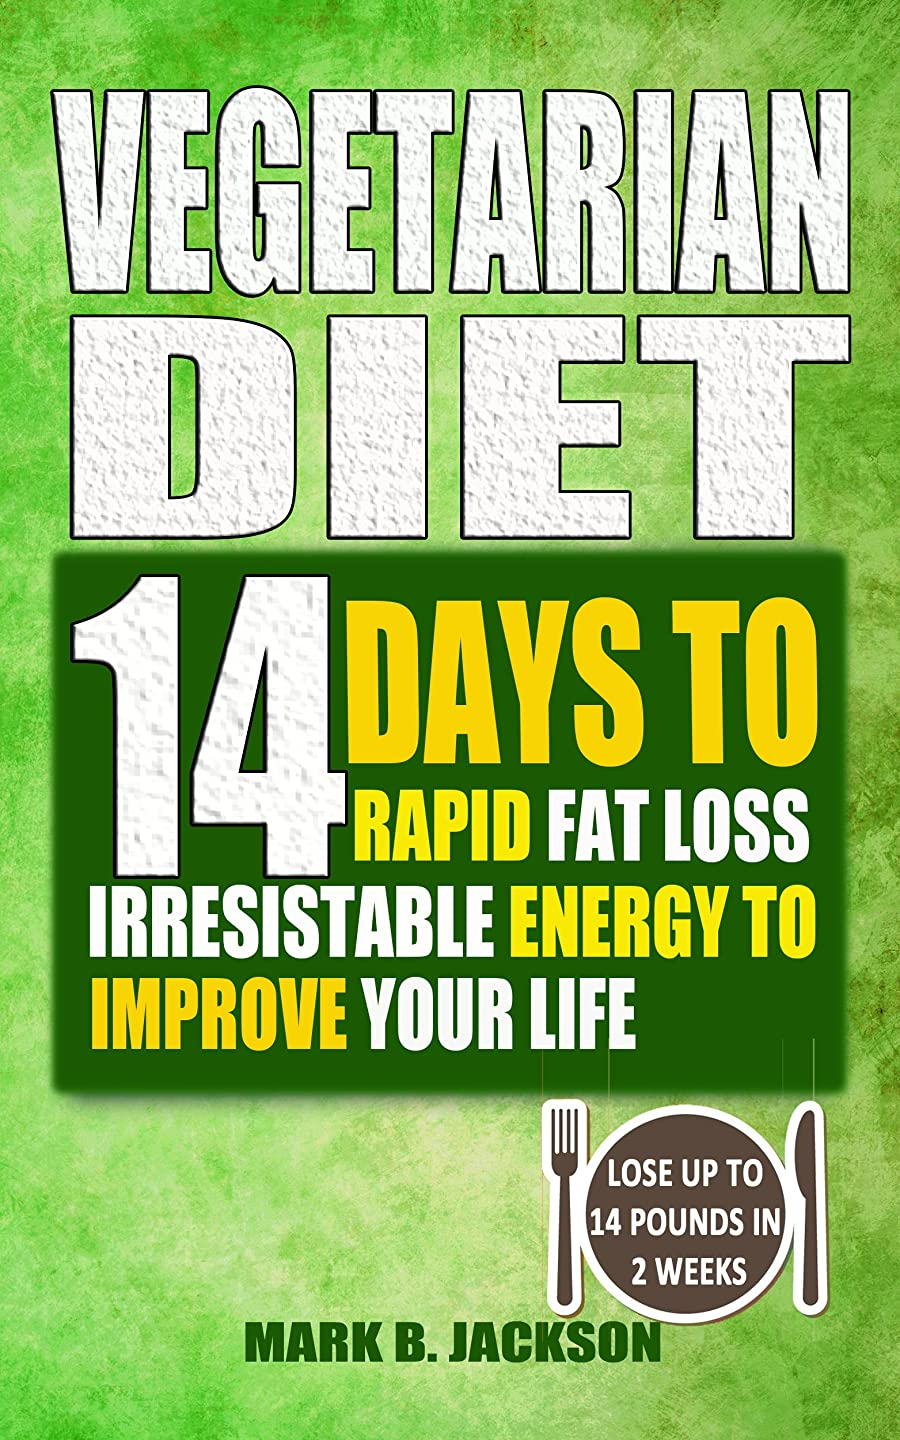 Vegetarian Diet: 14 Days To Rapid Fat Loss Irresistable Energy To Improve Your Life( 61 Newest & Mouth-watering Best Vegetarian Diet Recipes For Weight ... To 14 Pounds In 2 Weeks) (English Edition)